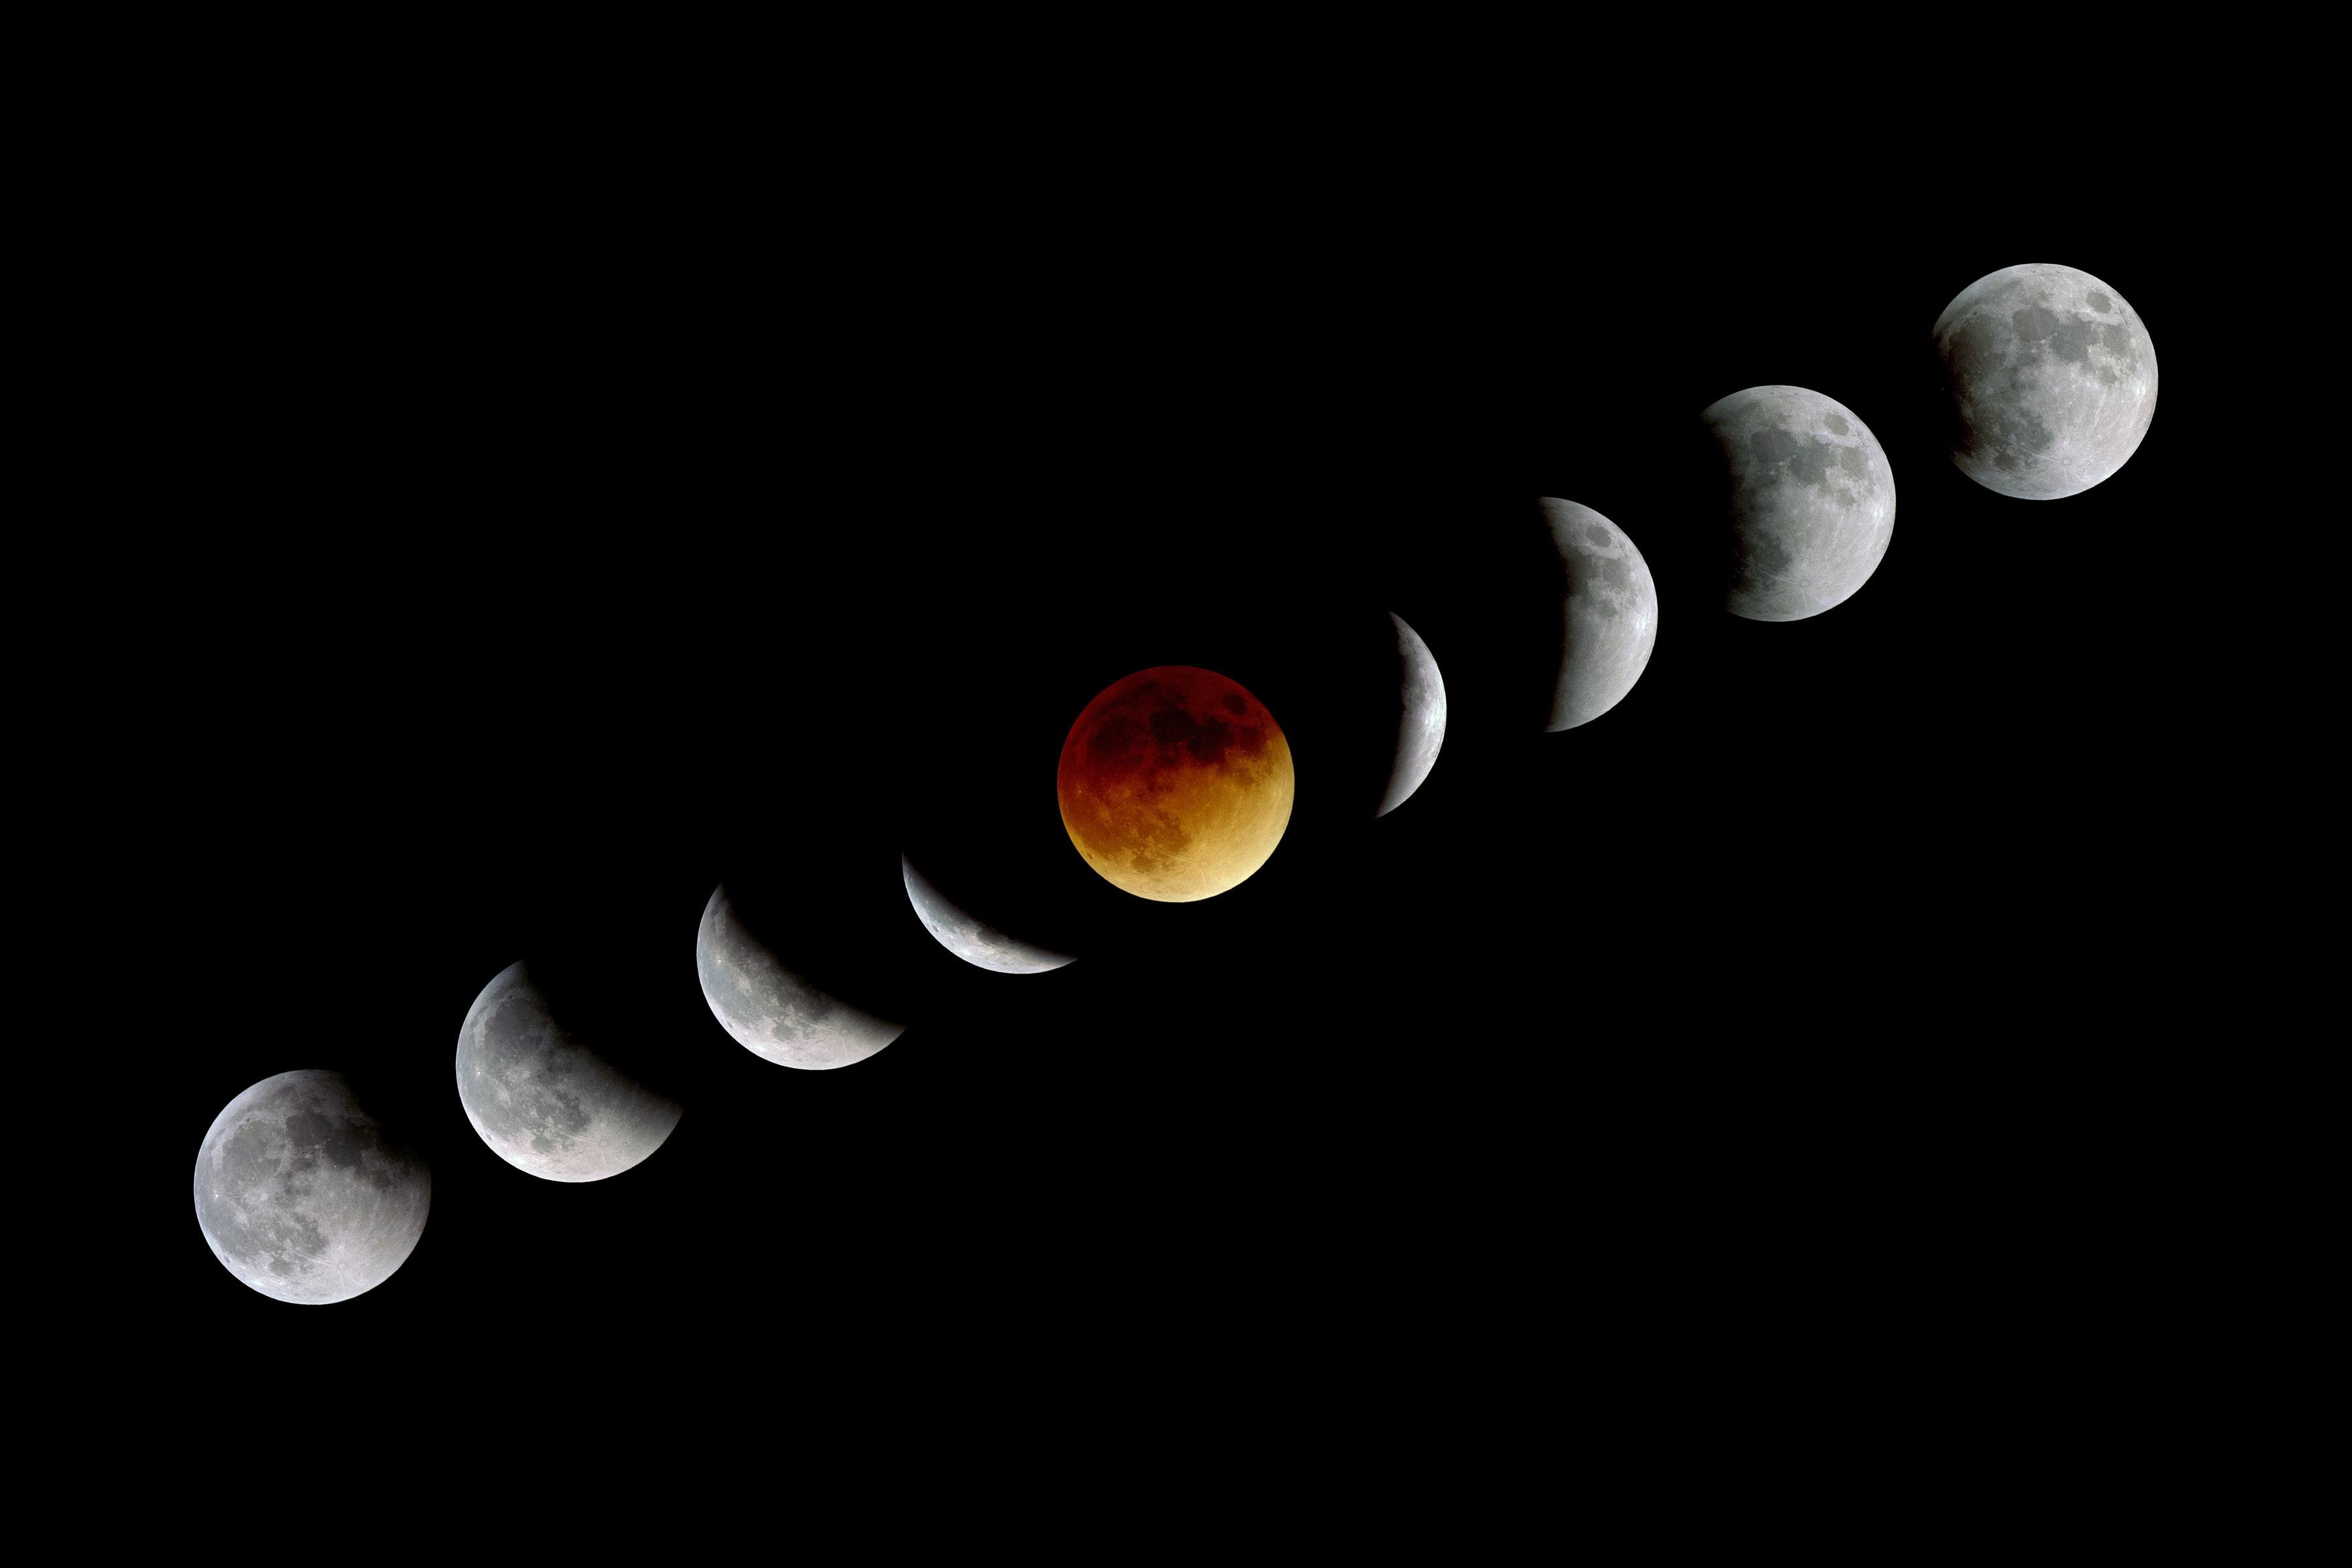 """The moon appears most red or """"bloody"""" at and near totality of a lunar eclipse."""